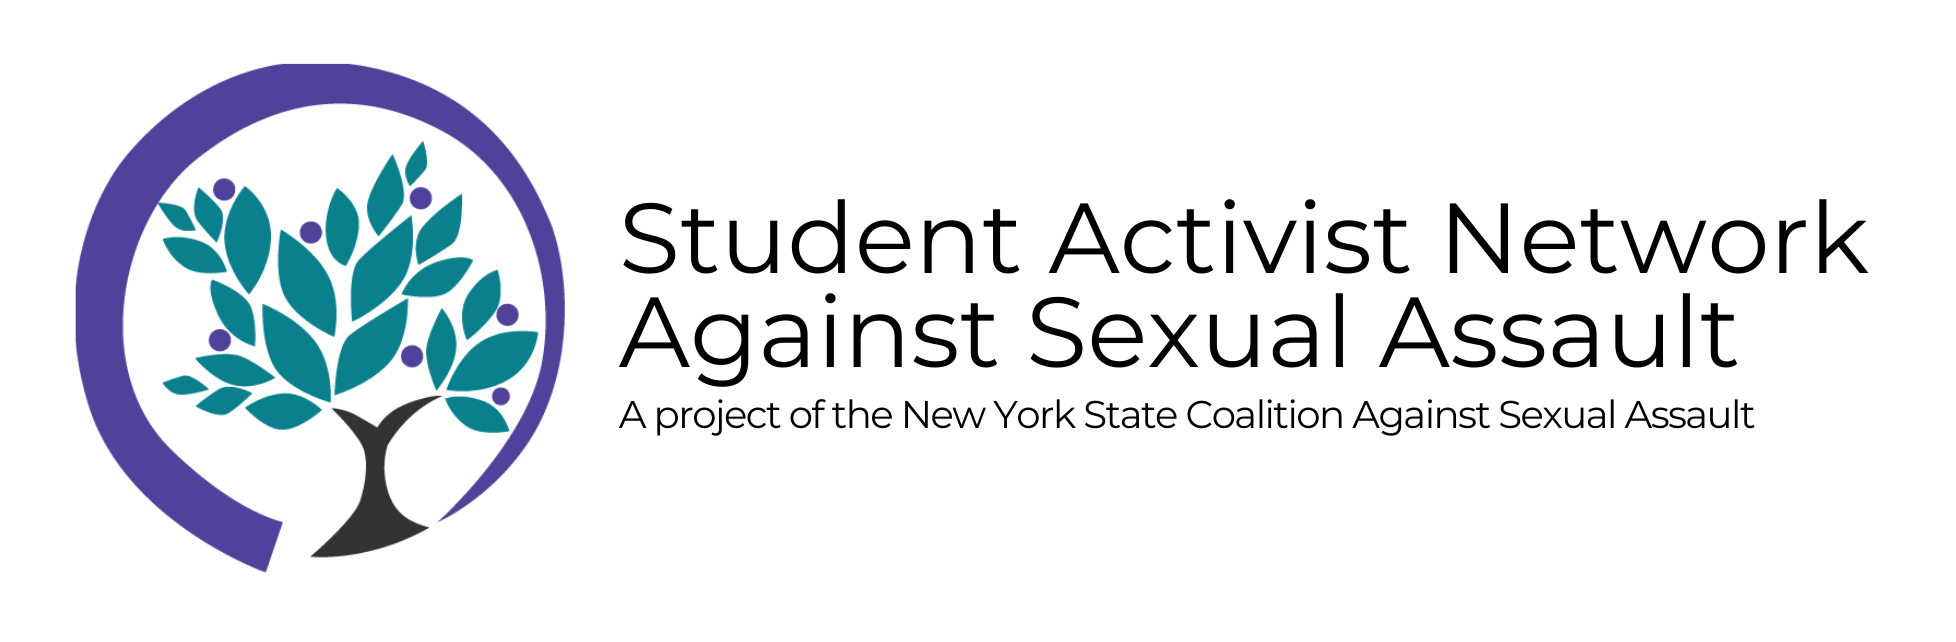 Student Activist Network Against Sexual Assault: A project of the New York State Coalition Against Sexual Assault. Includes NYSCASA's tree logo: black tree trunk with teal leaves, surrounded by a purple circle